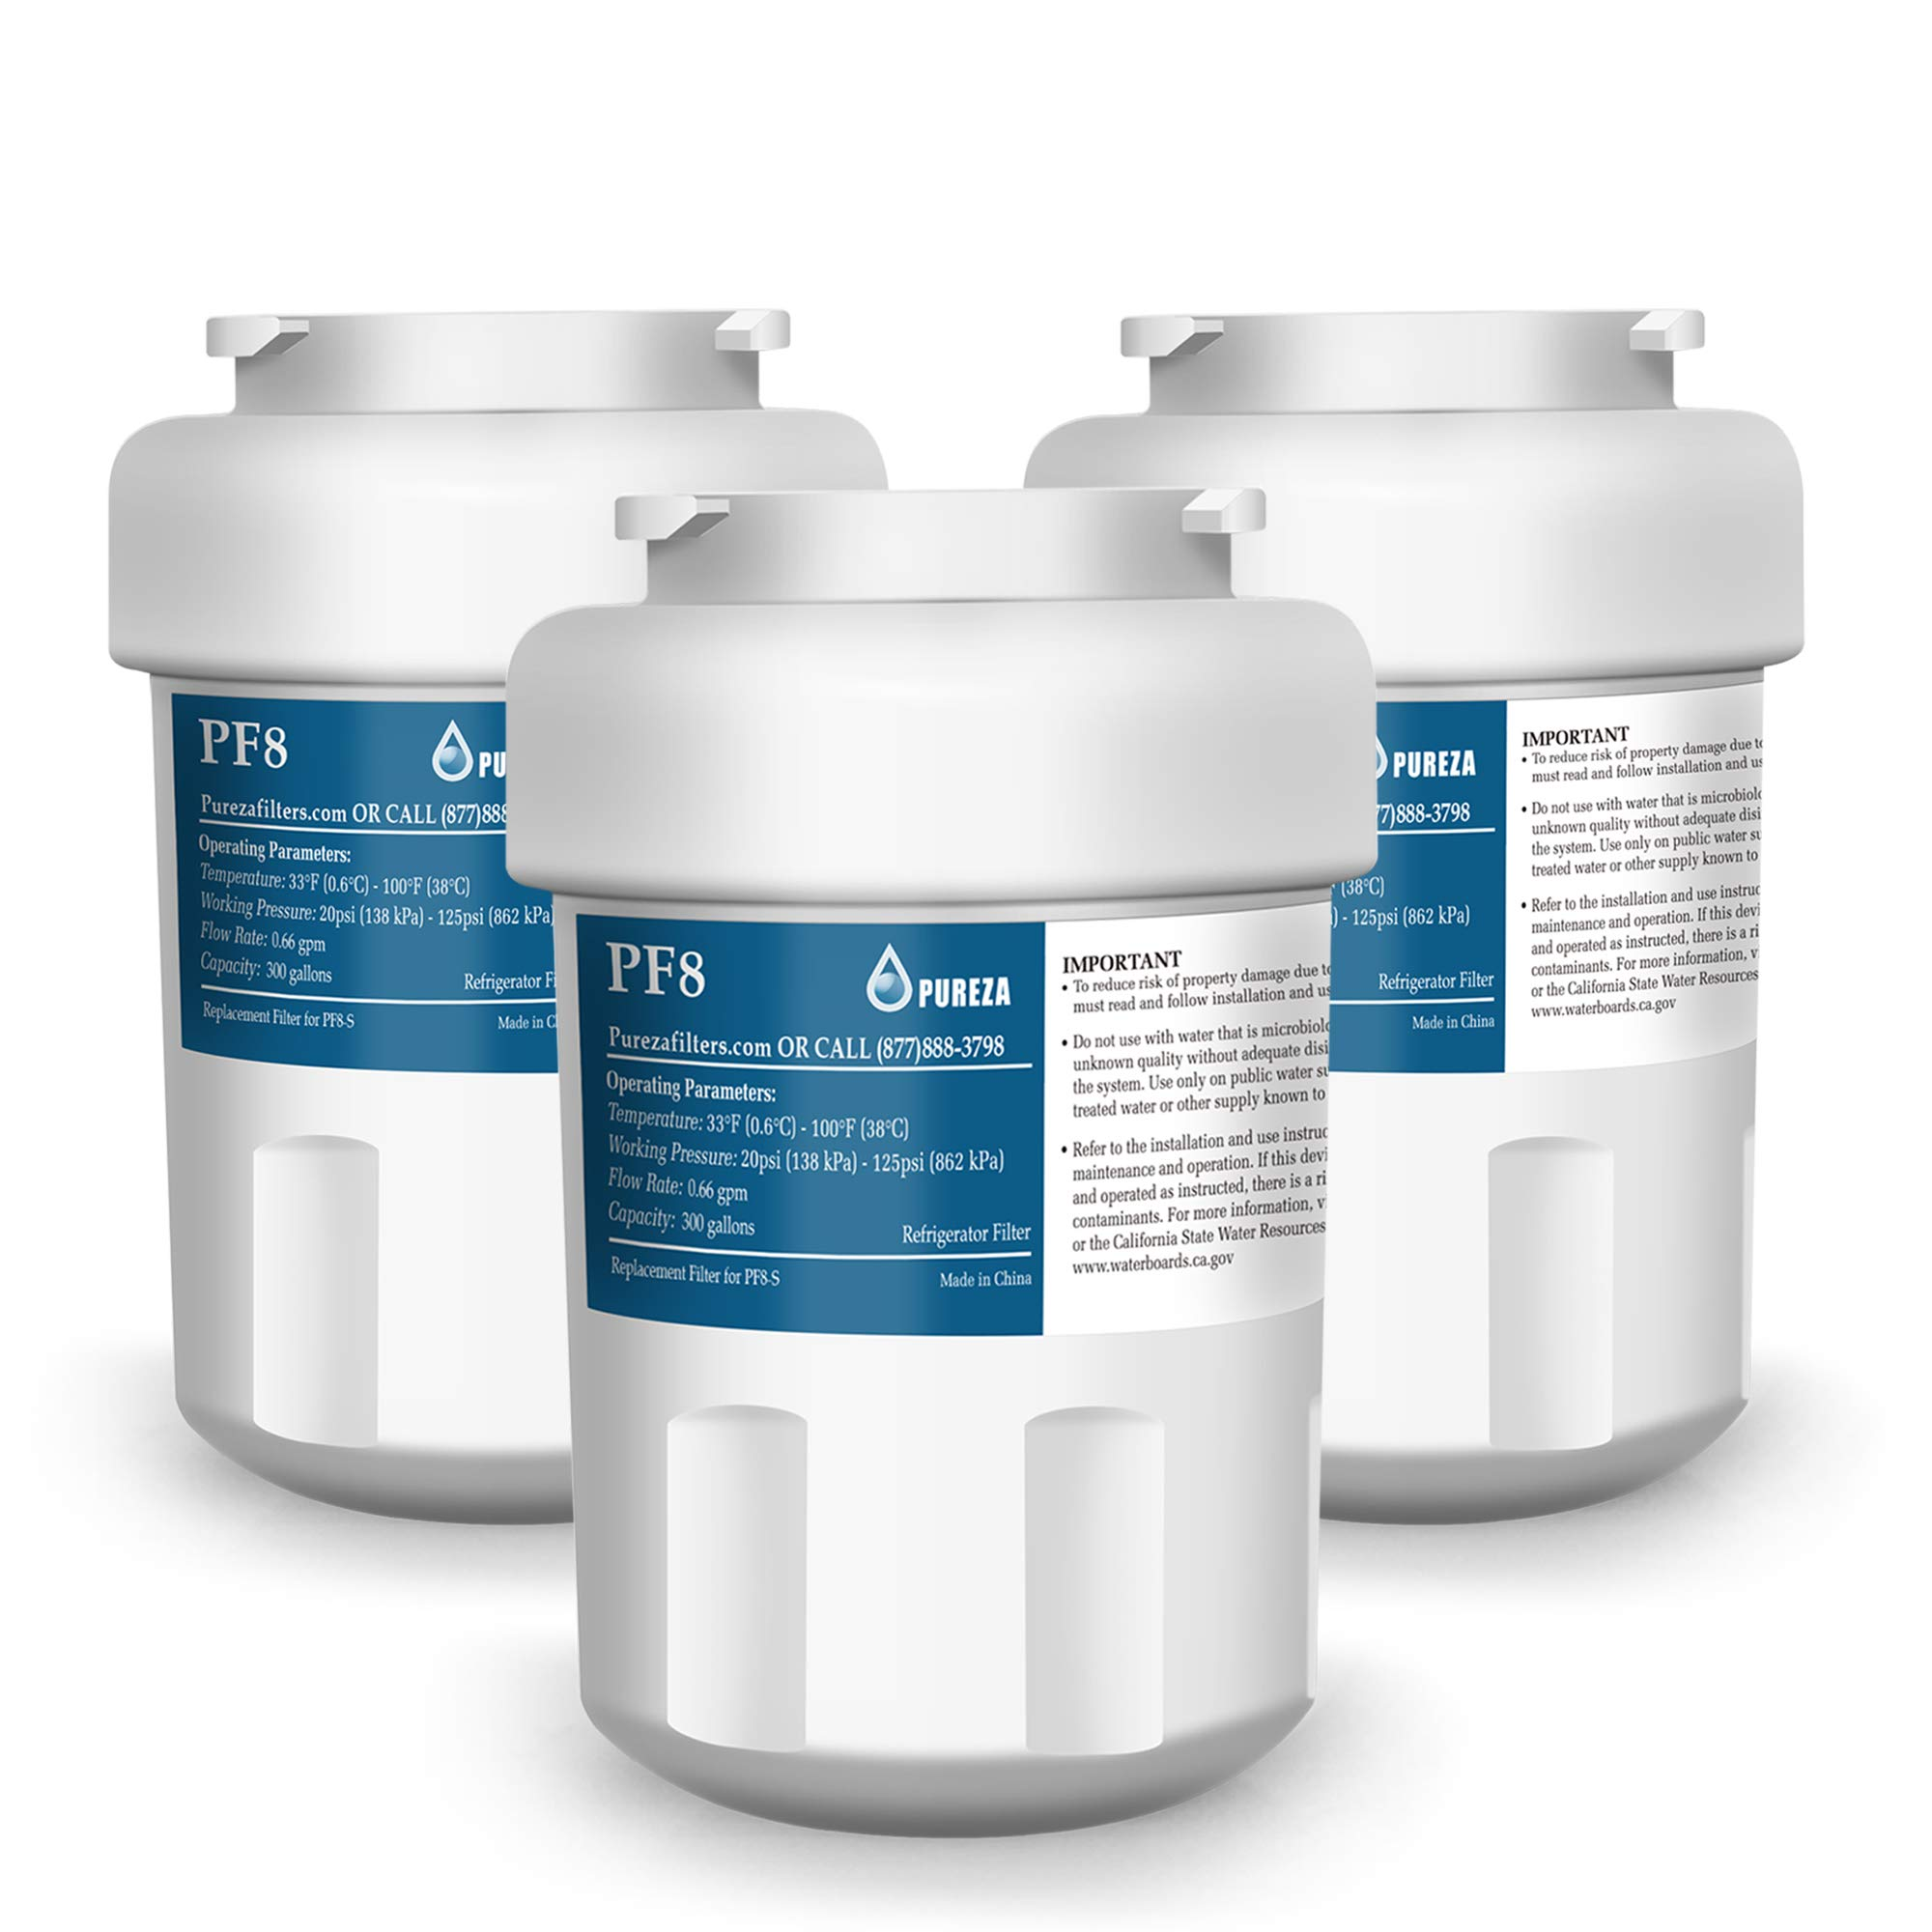 Refrigerator Water Filter Replacement for GE MWF, NSF 42 Certification, SmartWater, MWFA, MWFP, GWF, GWFA, Kenmore 9991, 46-9991, 469991, by Pureza Filter, Pack of 3